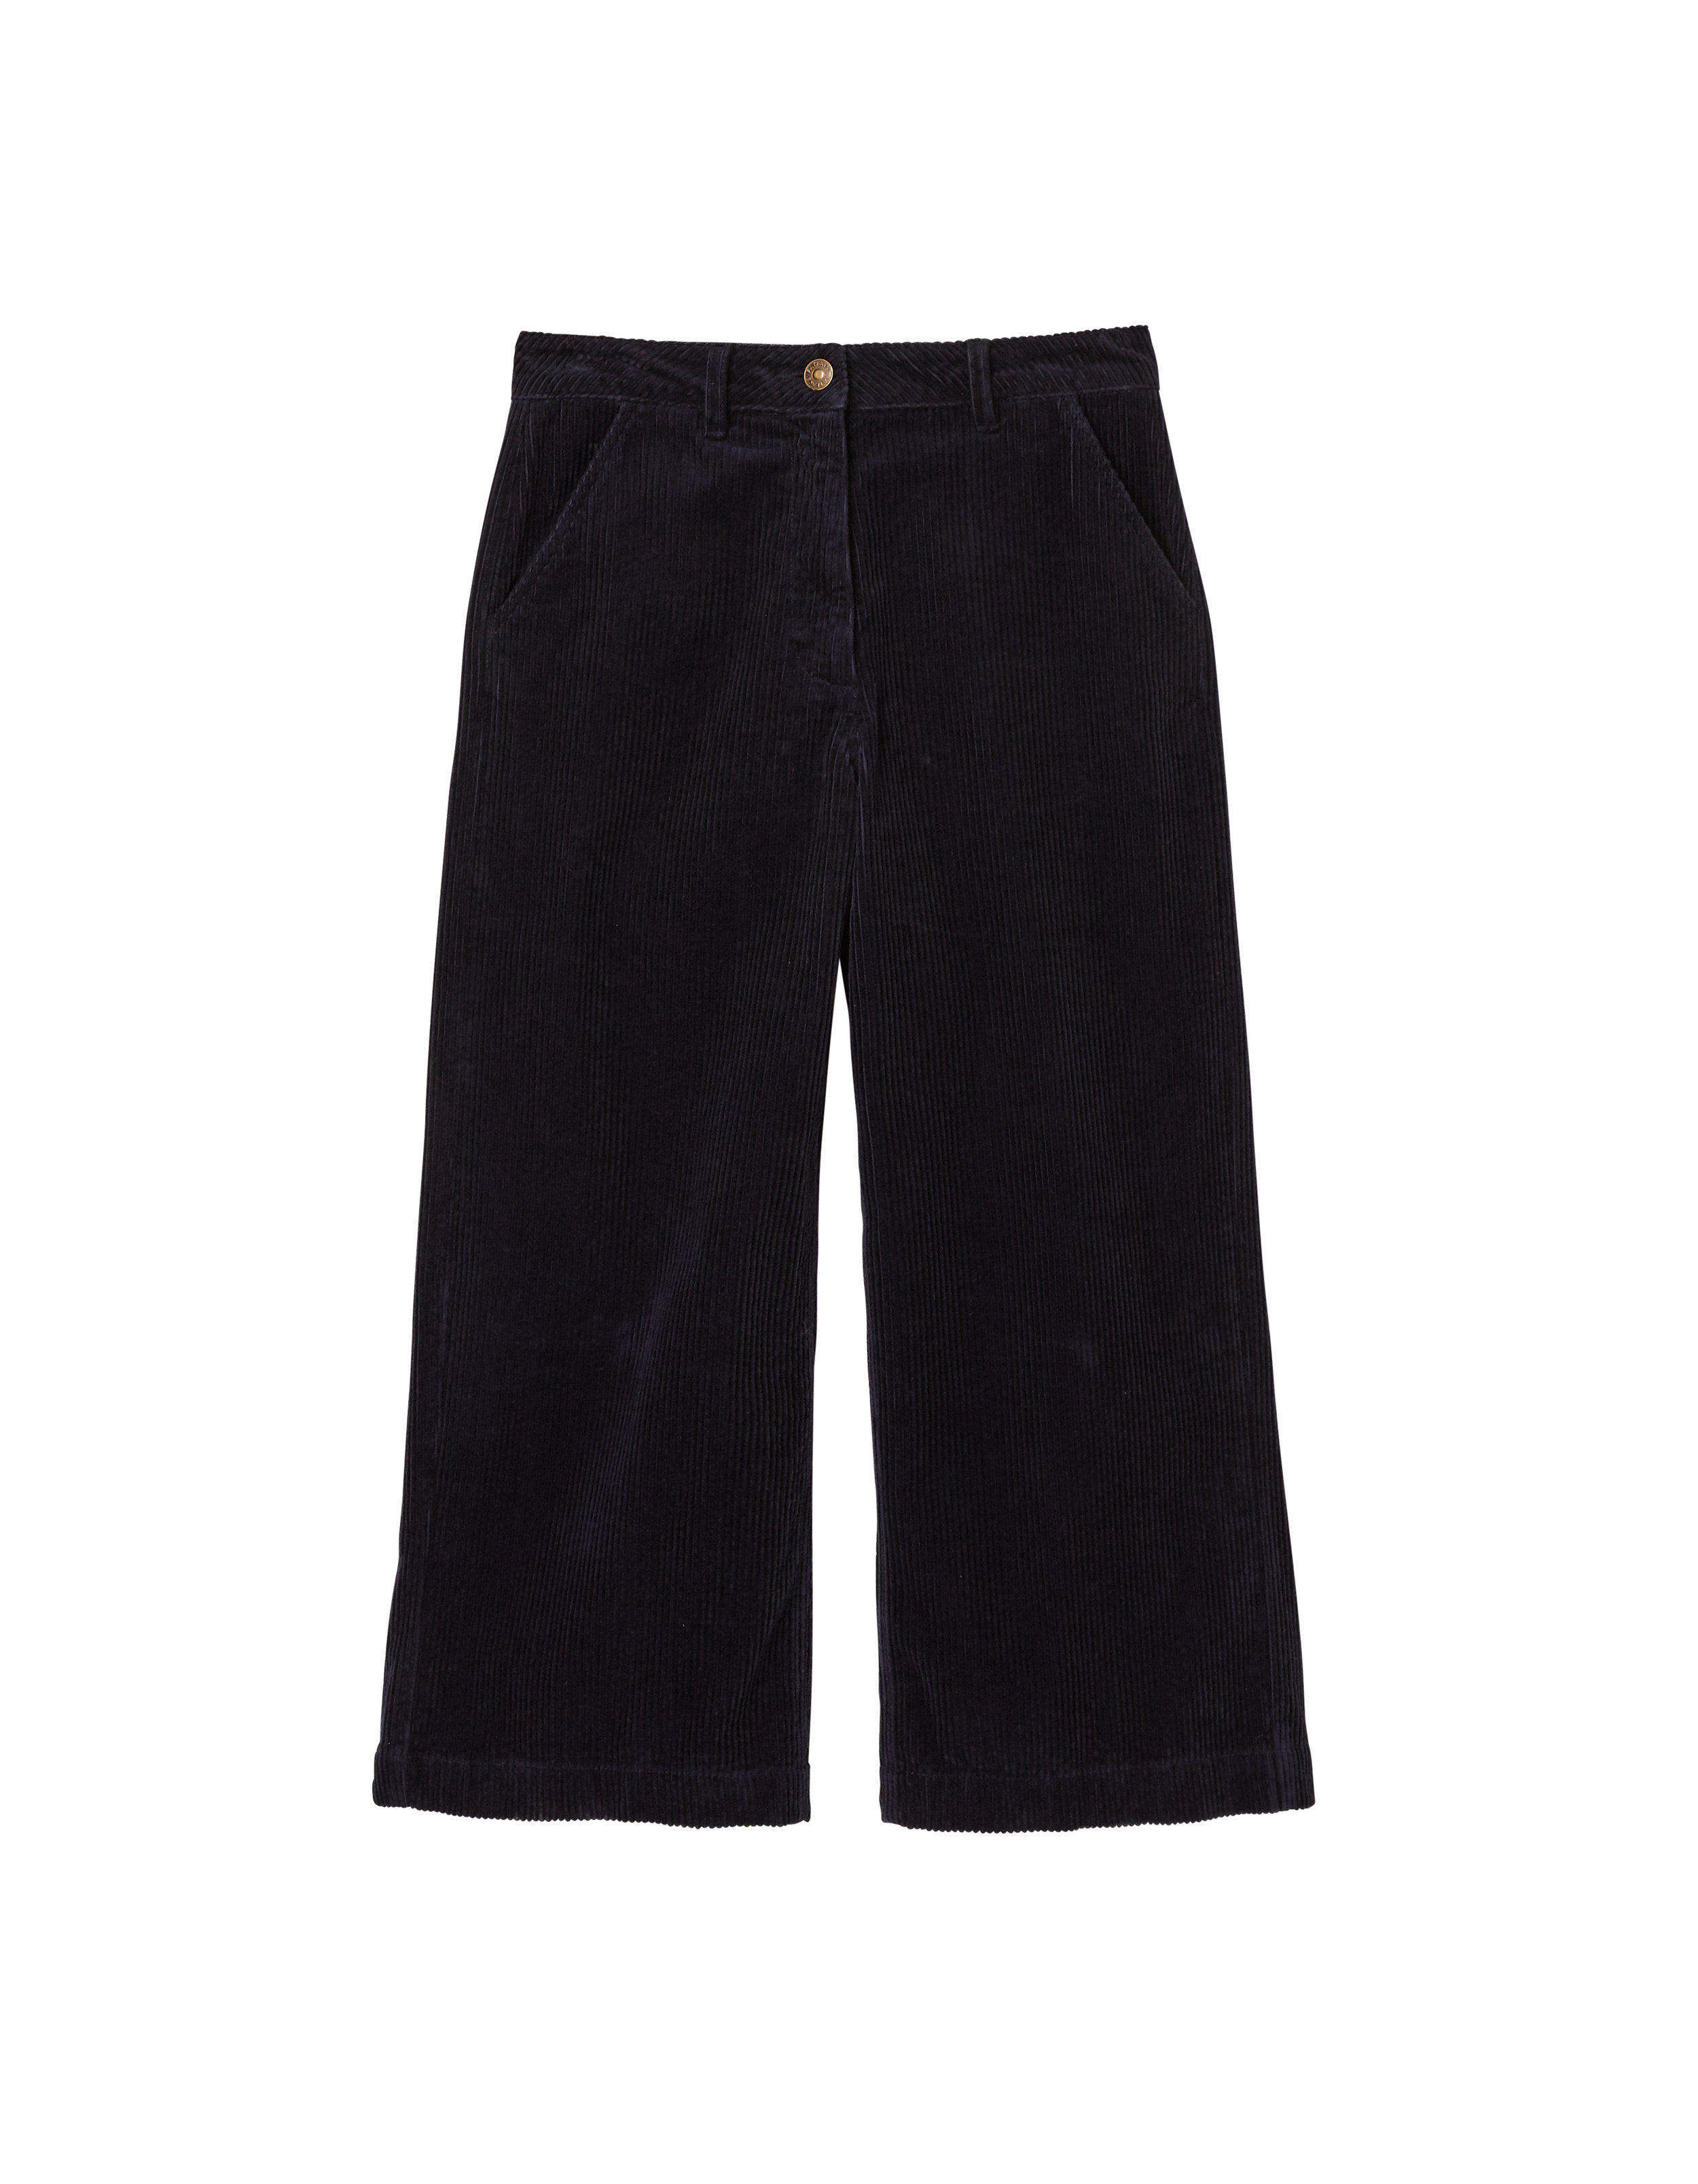 FatFace Cord Trousers in Navy 946674 £49.50 www.fatface.com.jpg